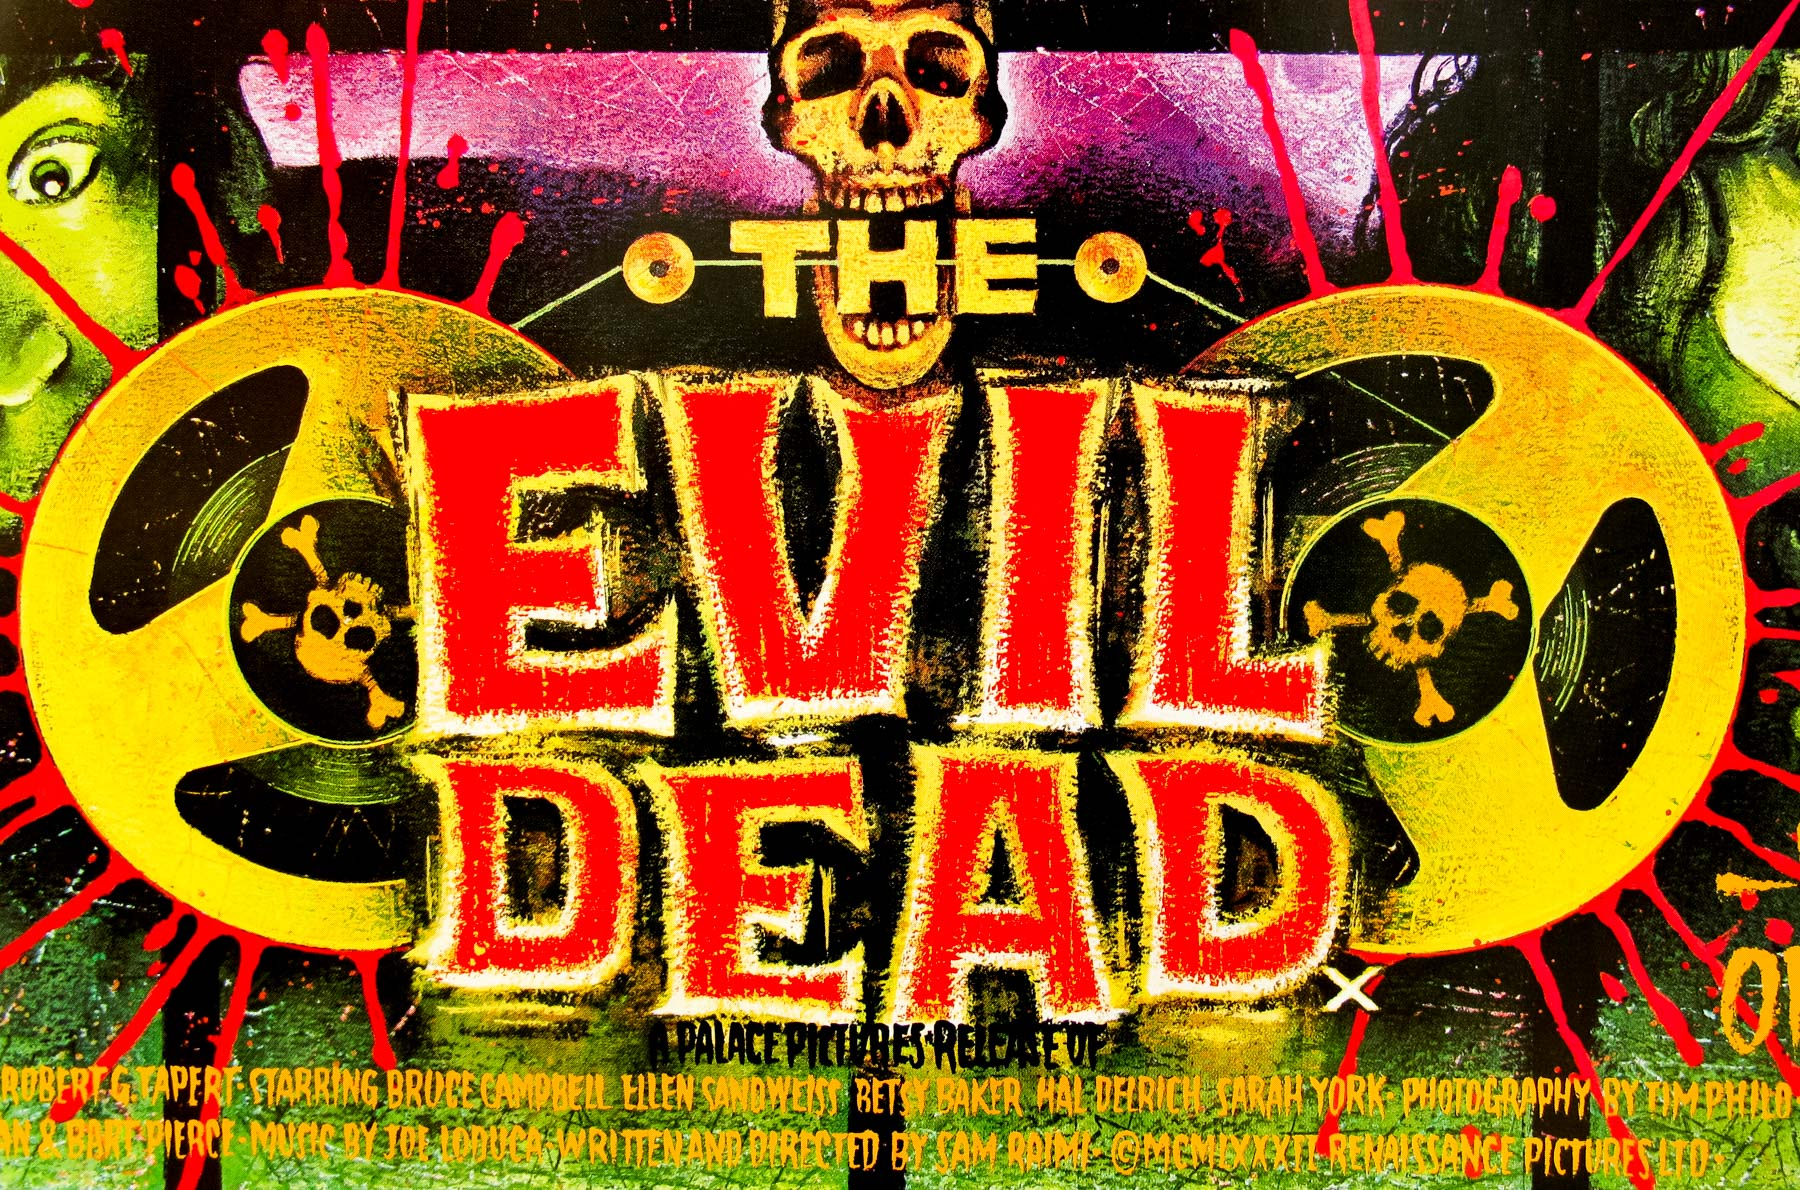 The Evil Dead quad – detail